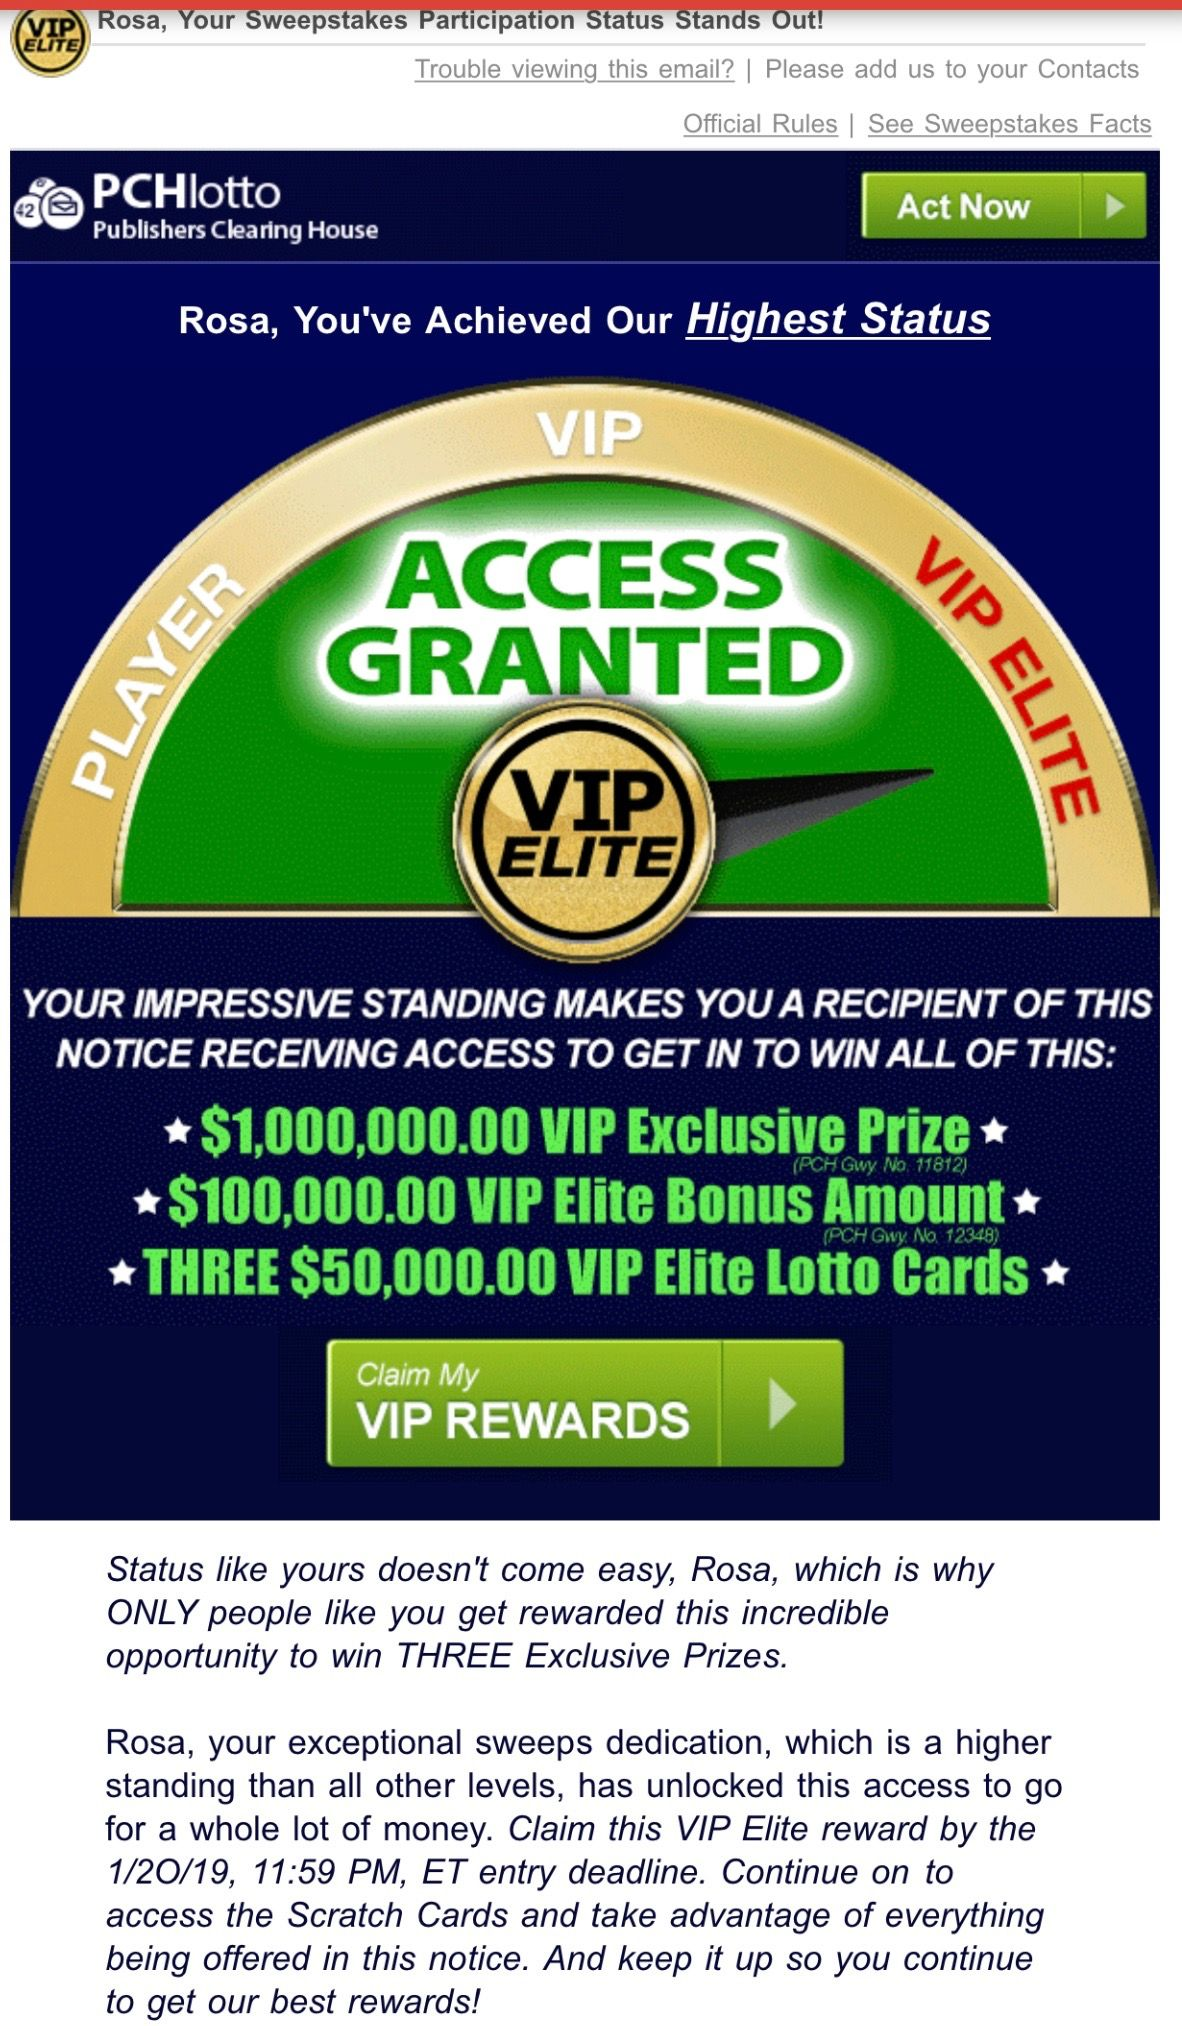 PCH VIP ELITE ACCESS GRANTED-I Rosa Rojas now officially Claim my